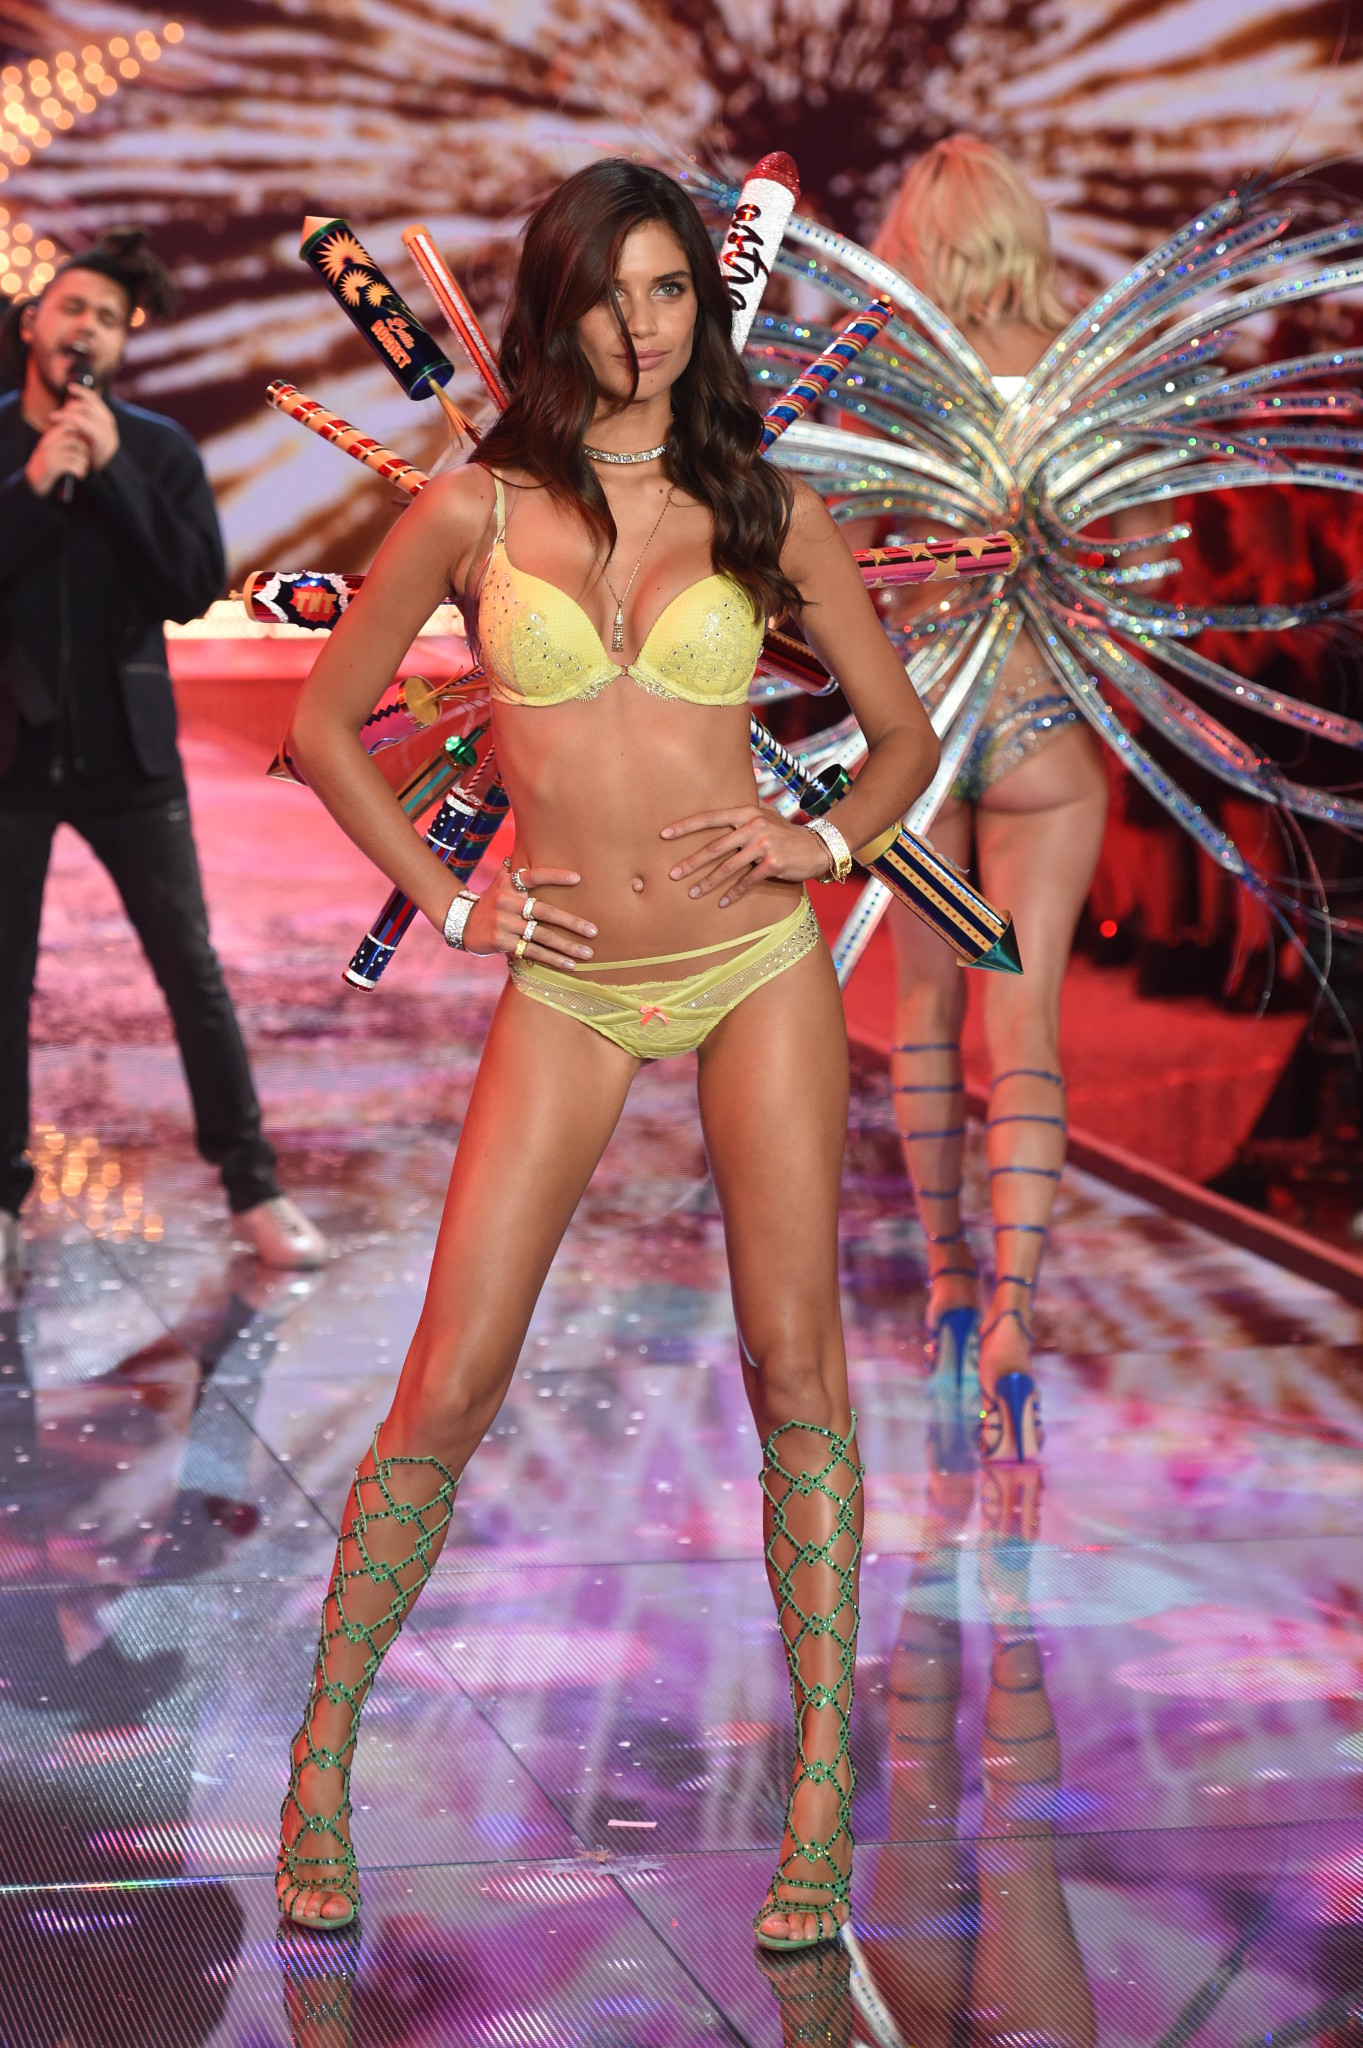 NEW YORK, NY - NOVEMBER 10: Model and New Victoria's Secret Angel Sara Sampaio from Portugal walks the runway during the 2015 Victoria's Secret Fashion Show at Lexington Avenue Armory on November 10, 2015 in New York City. (Photo by Dimitrios Kambouris/Getty Images for Victoria's Secret)